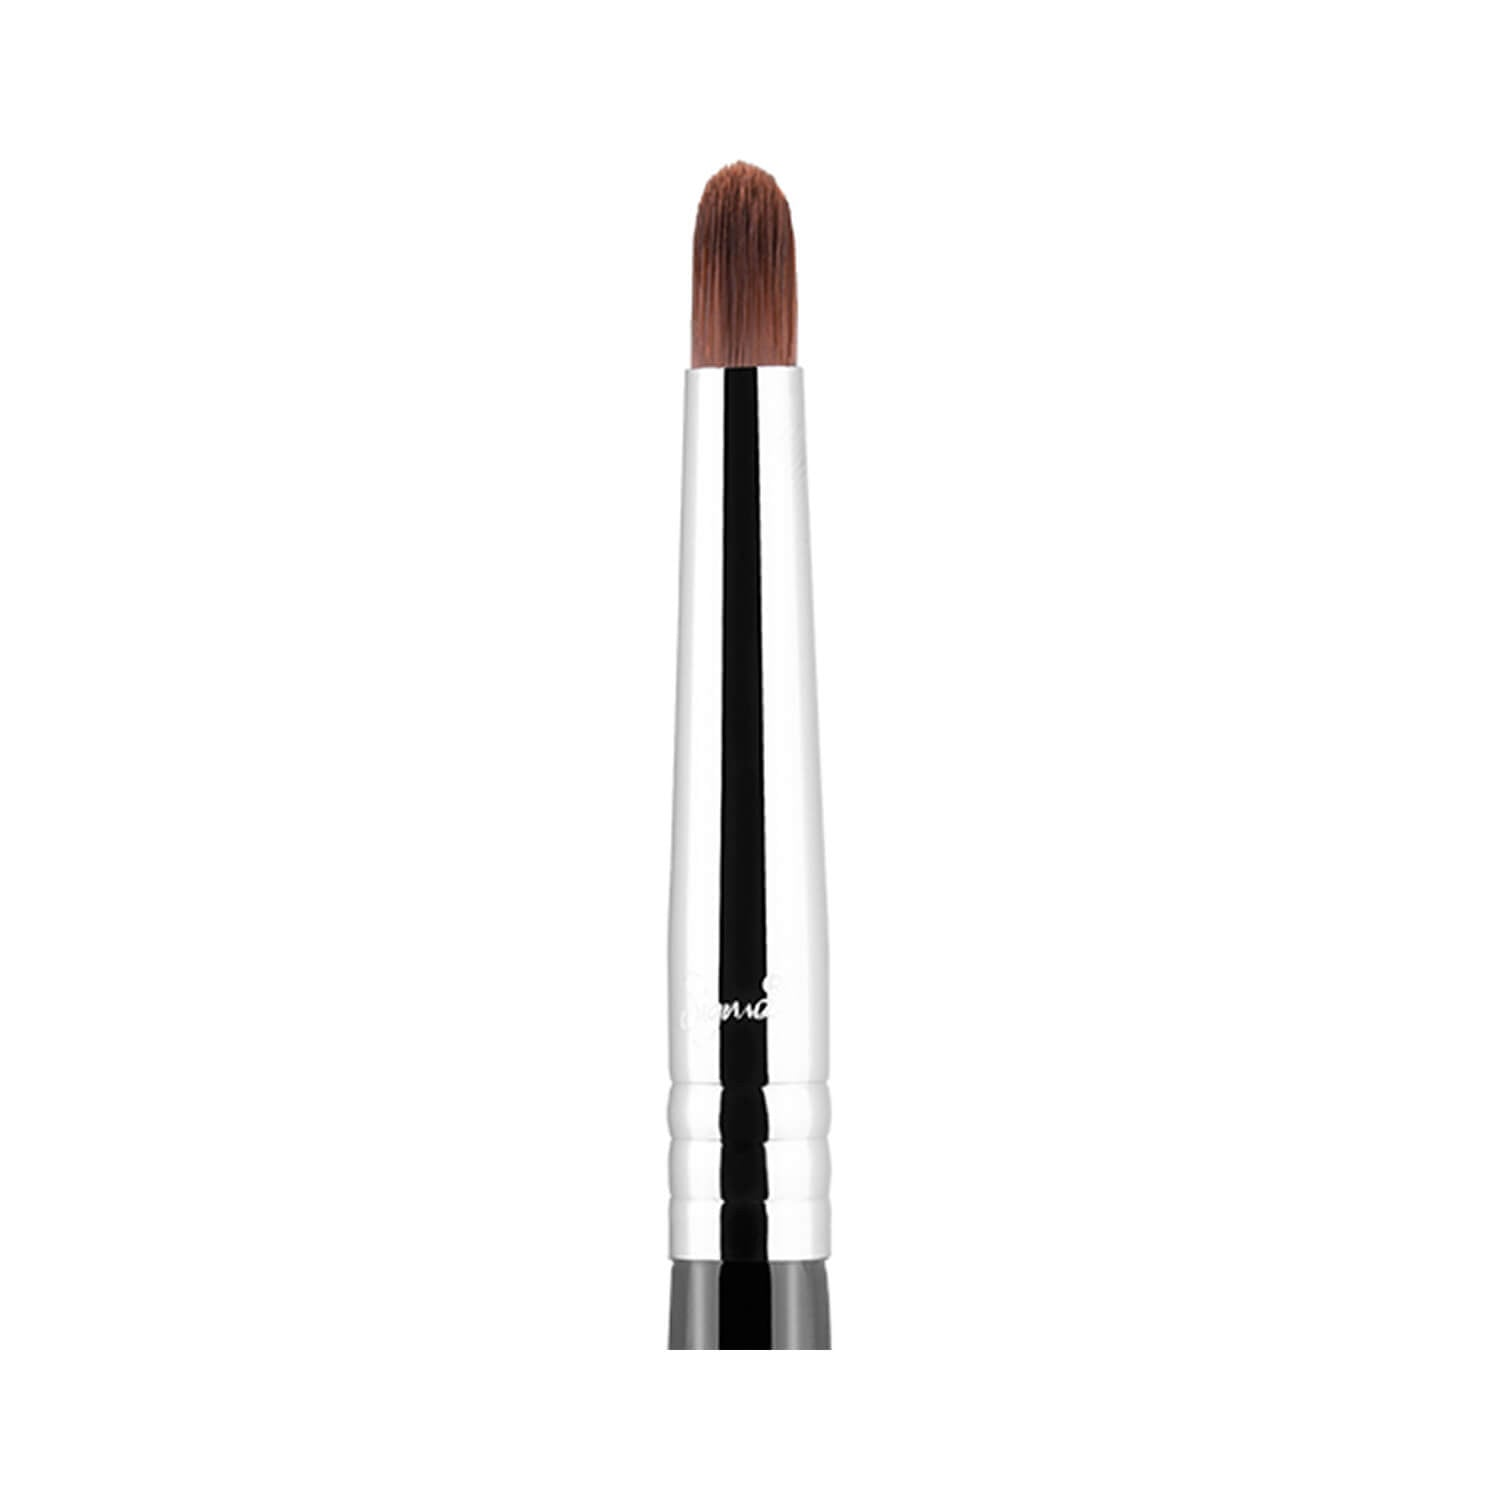 Sigma Beauty E30S Pencil Brush